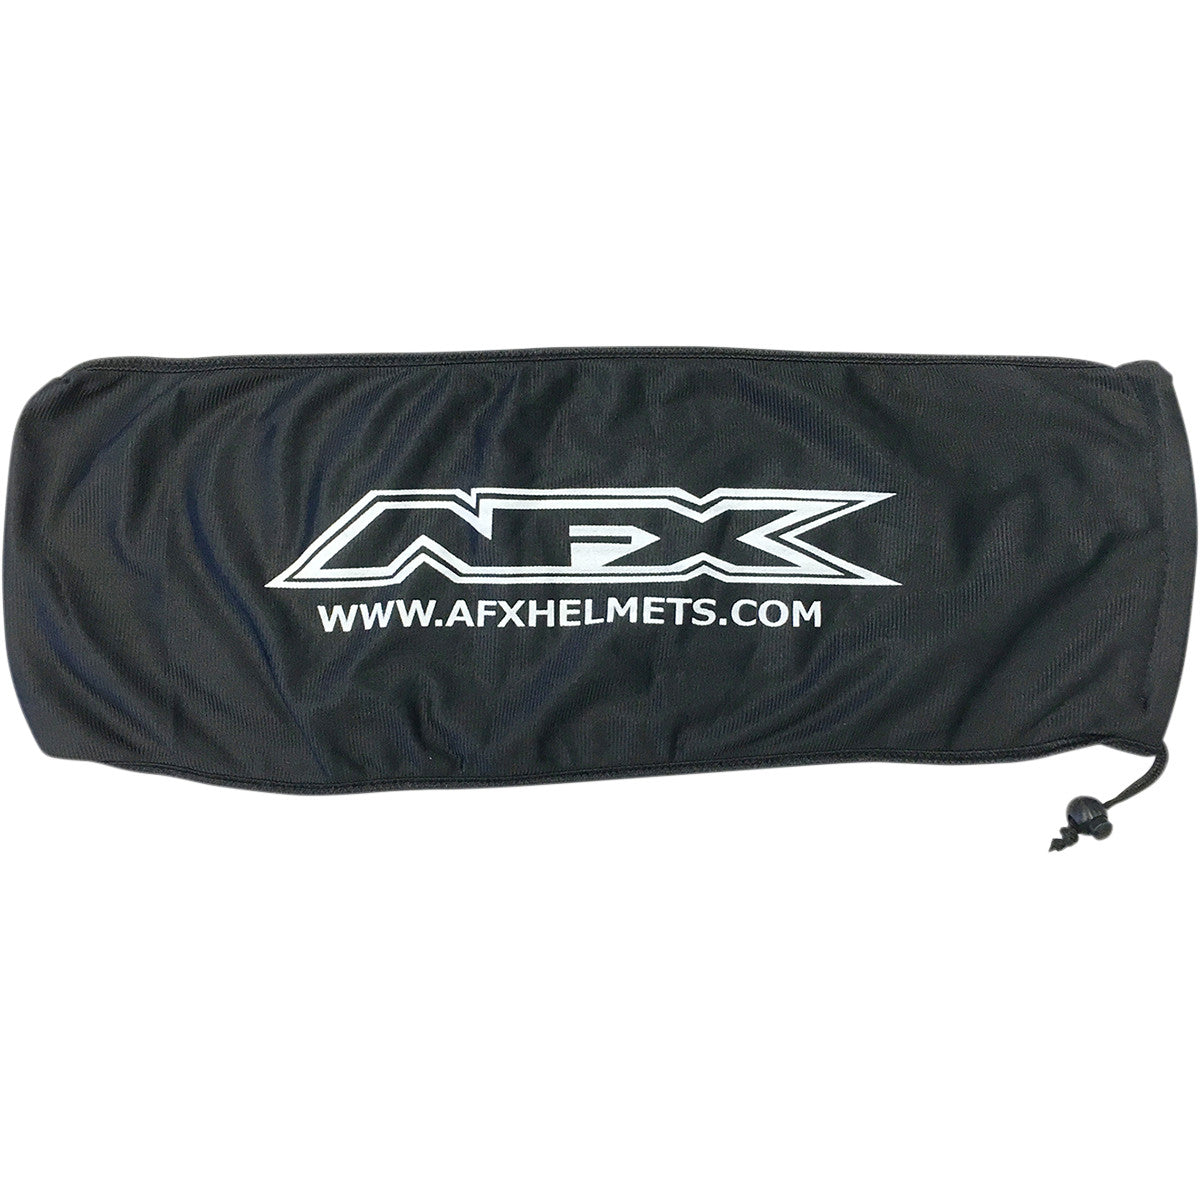 AFX HELMET DRAWSTRING FACE SHIELD BAG